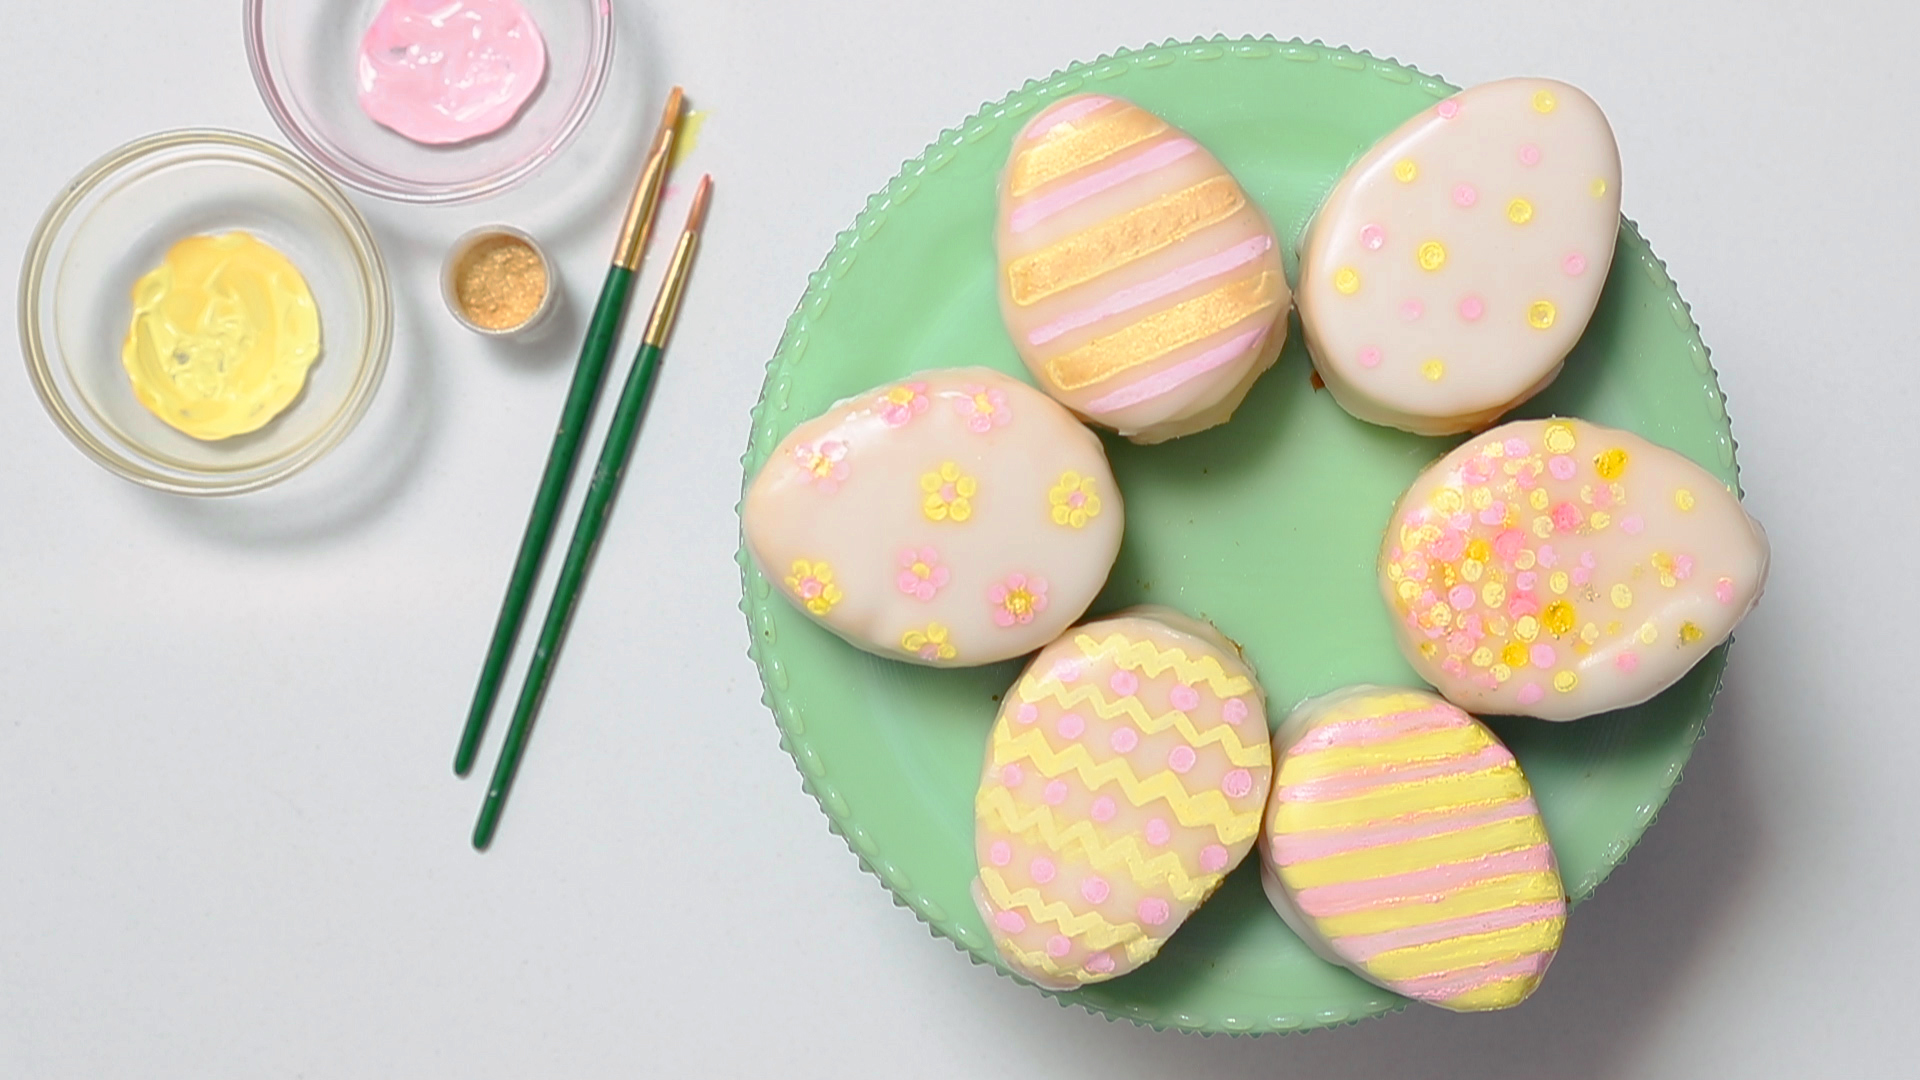 How to Make Mini Easter Egg Cakes